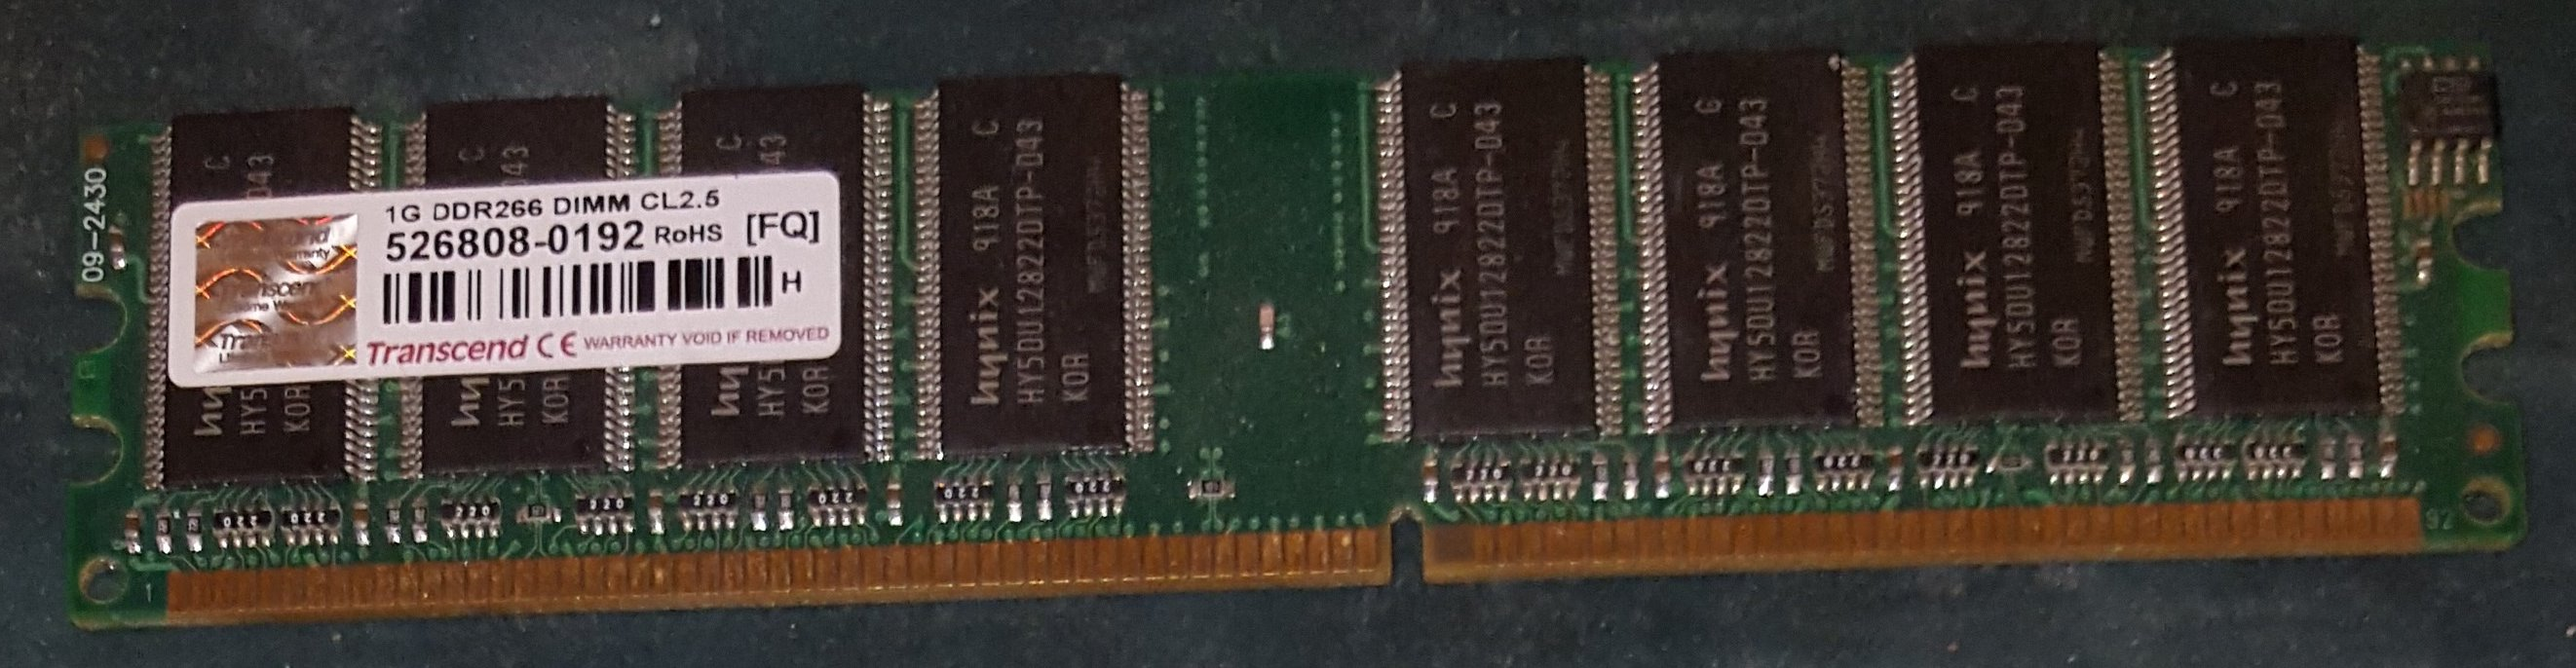 Transcend 1 Gb DDR 266 Mhz PC2100 DIMM CL2.5 puces Hynix – Neuf